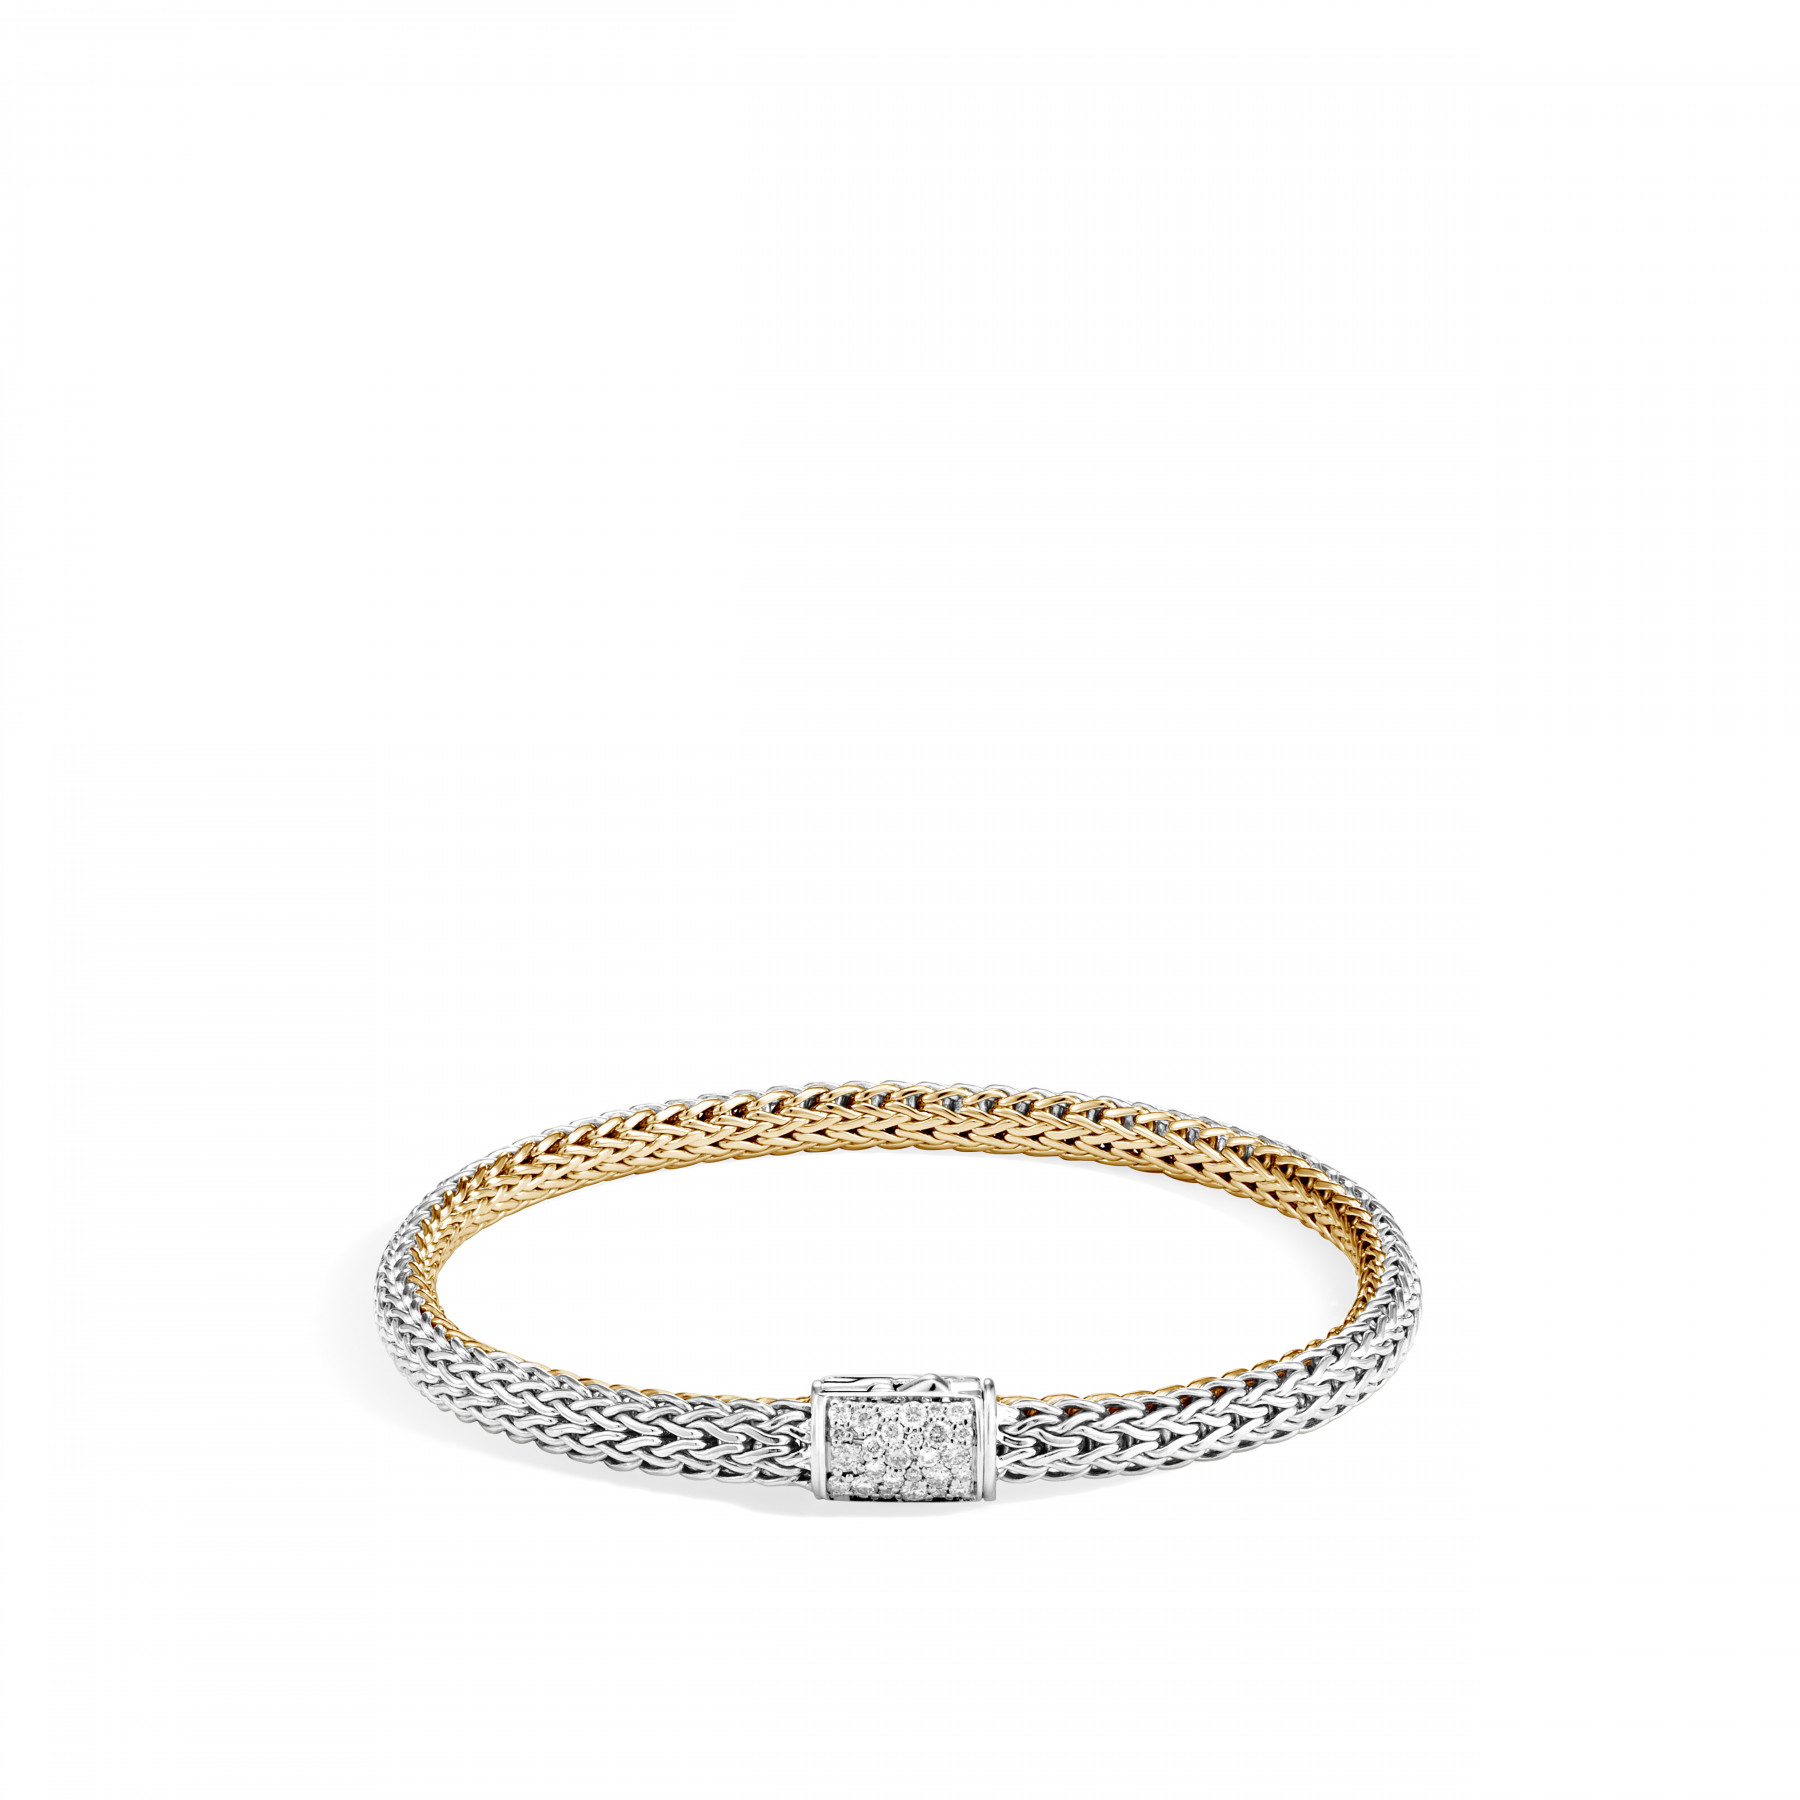 John Hardy Reversible 5mm Sapphire and Diamond Bracelet in Silver and 18K gold silver image